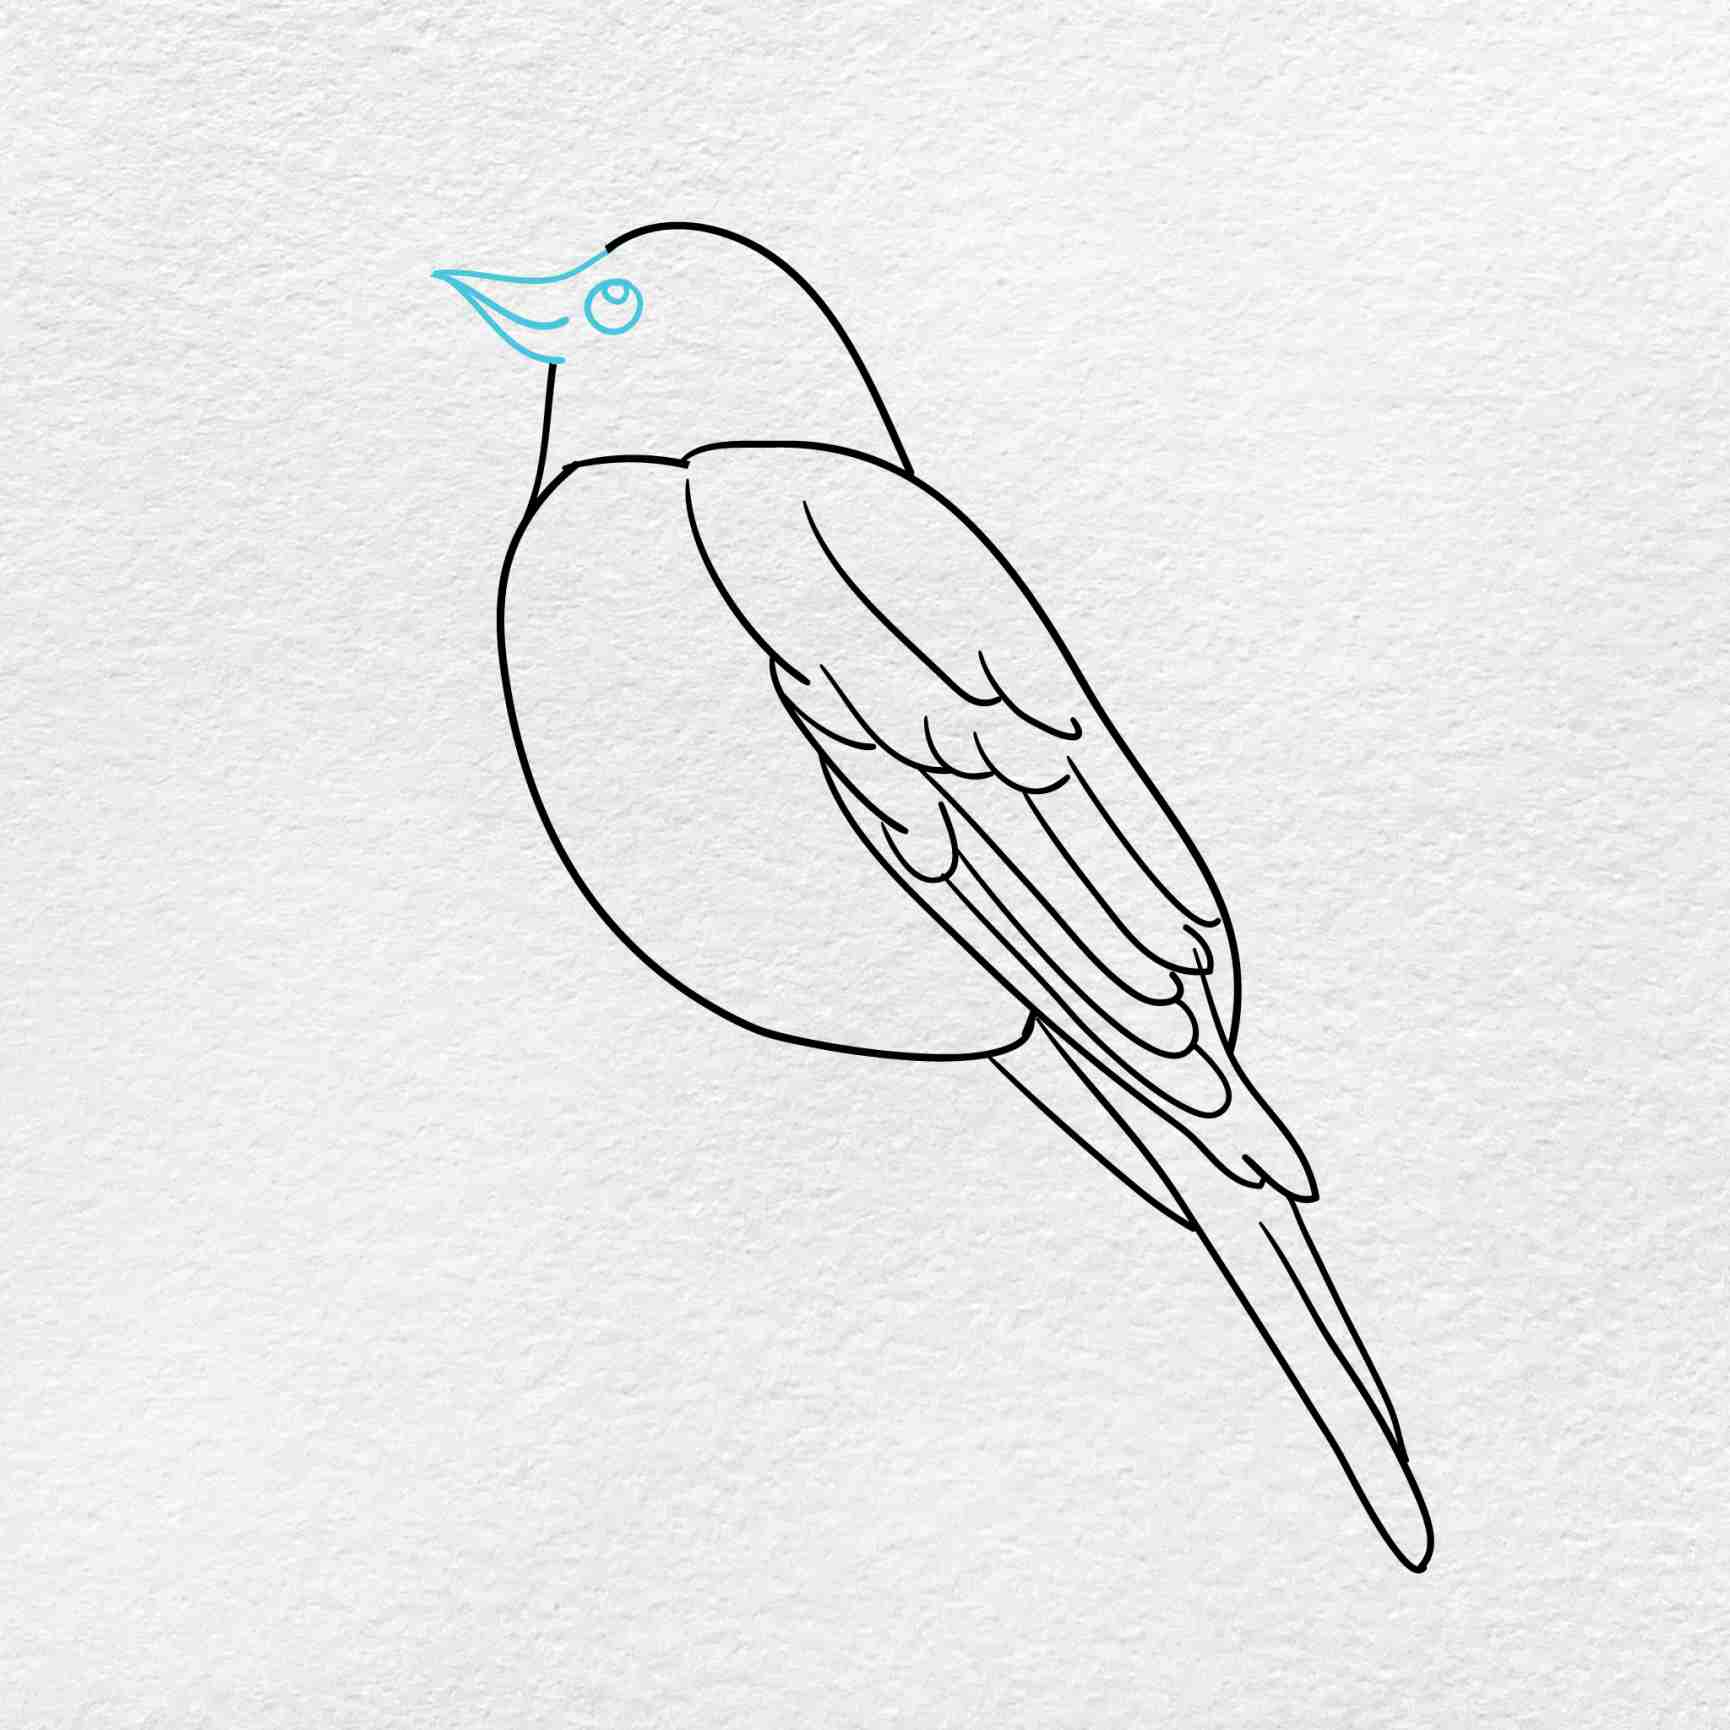 How To Draw A Robin: Step 4